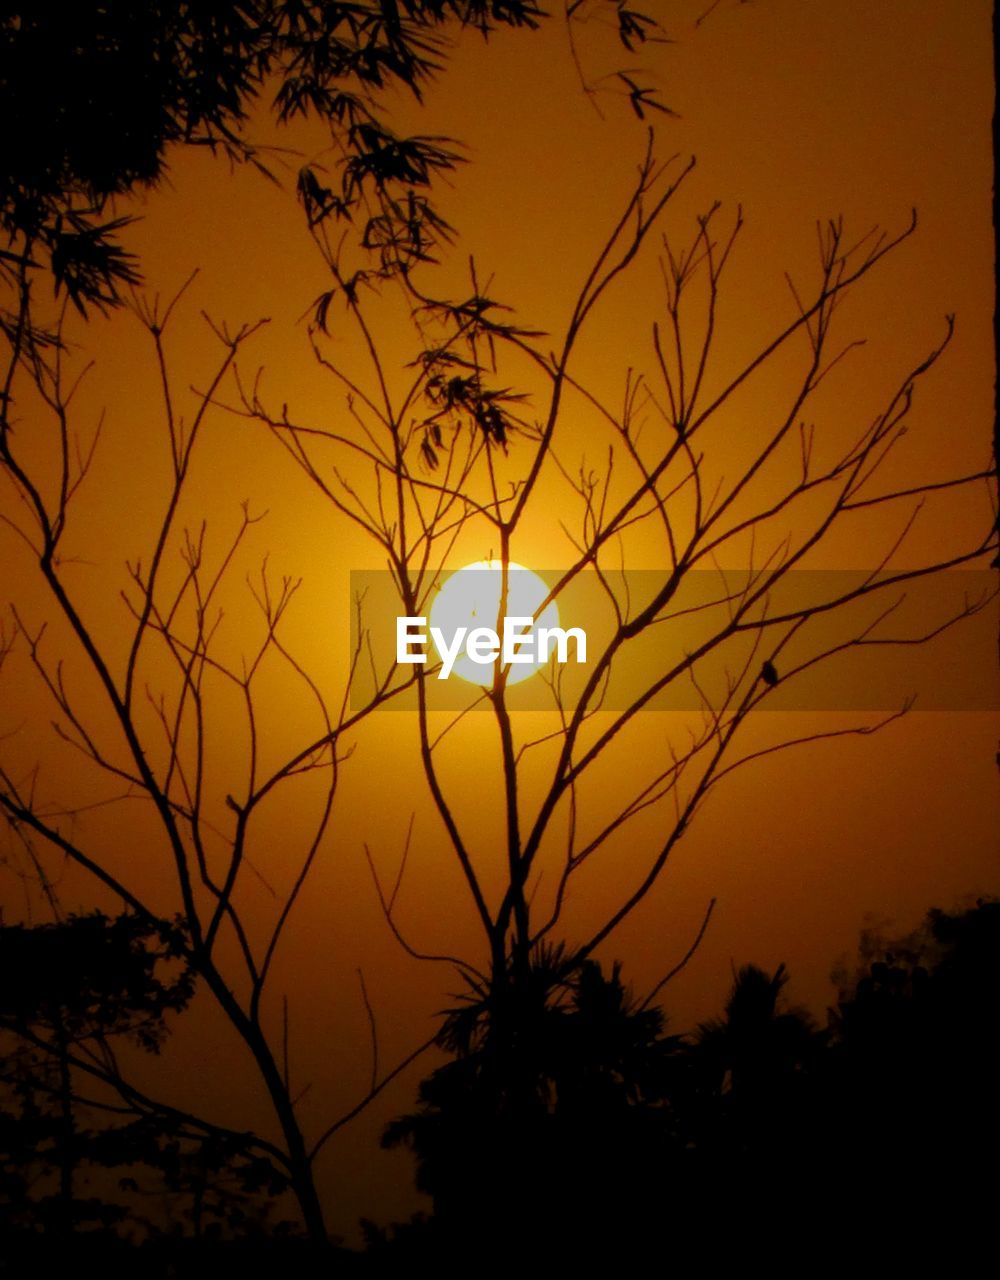 sunset, sky, beauty in nature, silhouette, orange color, scenics - nature, plant, tranquility, tranquil scene, sun, tree, idyllic, nature, no people, outdoors, sunlight, growth, non-urban scene, majestic, yellow, romantic sky